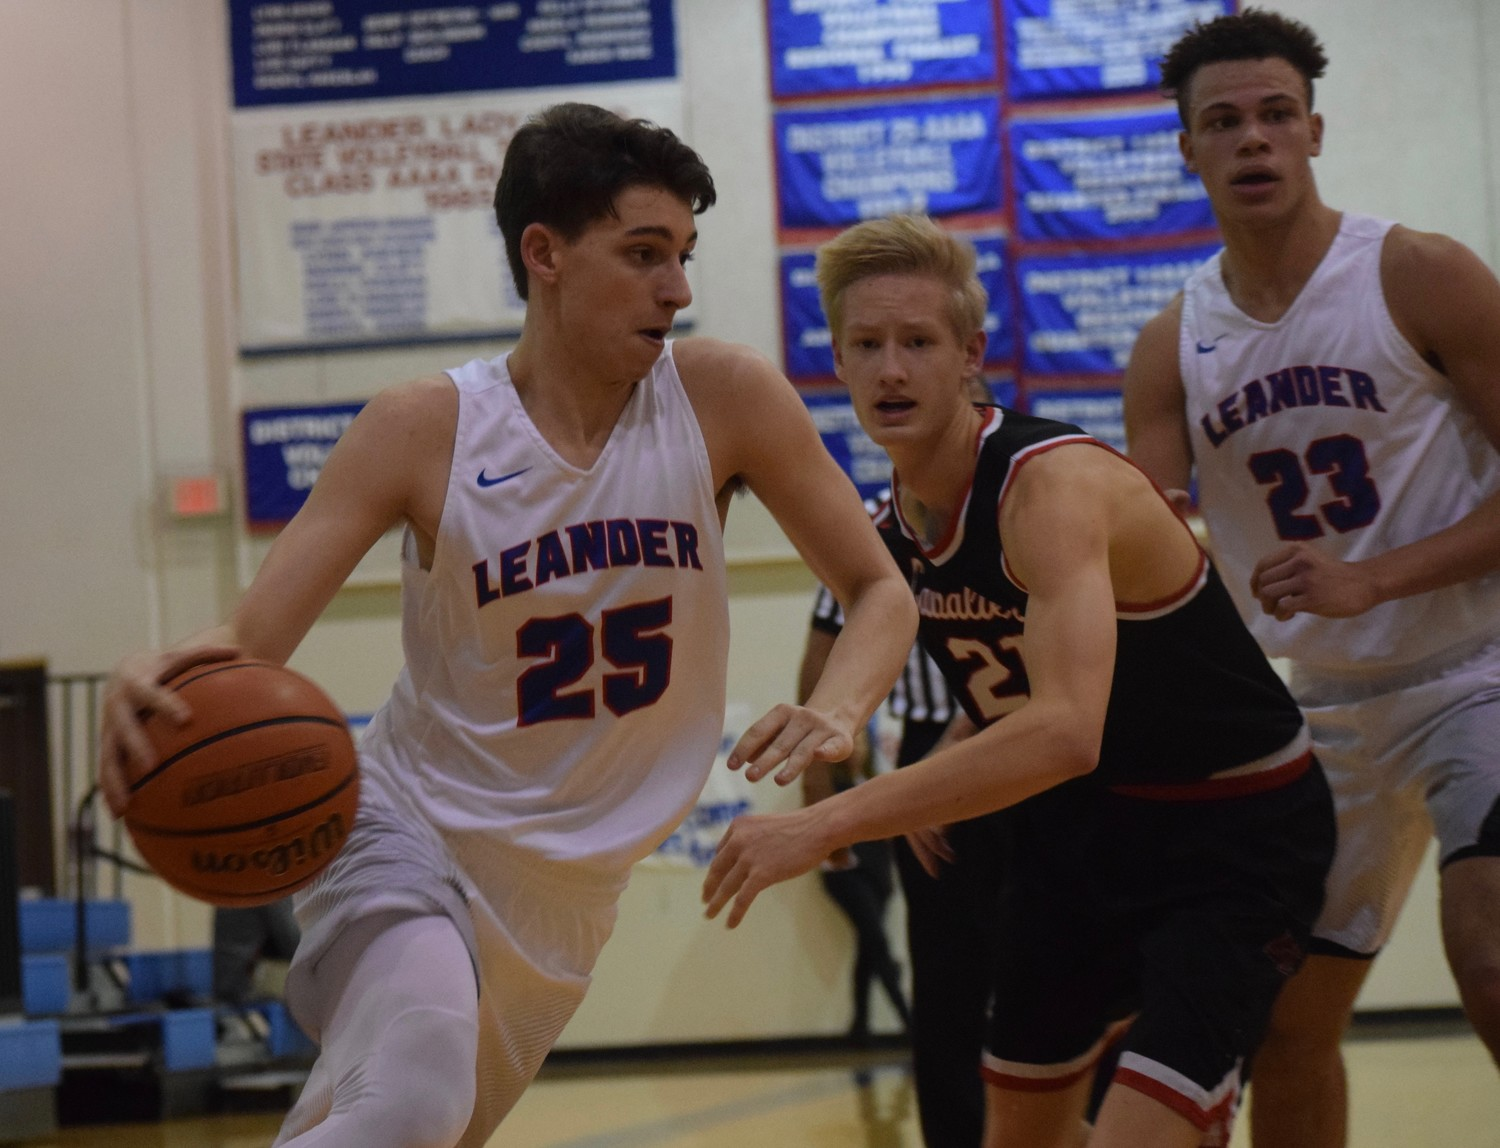 Christ Jones and Leander lost to Lake Travis 49-45 at home Friday night.